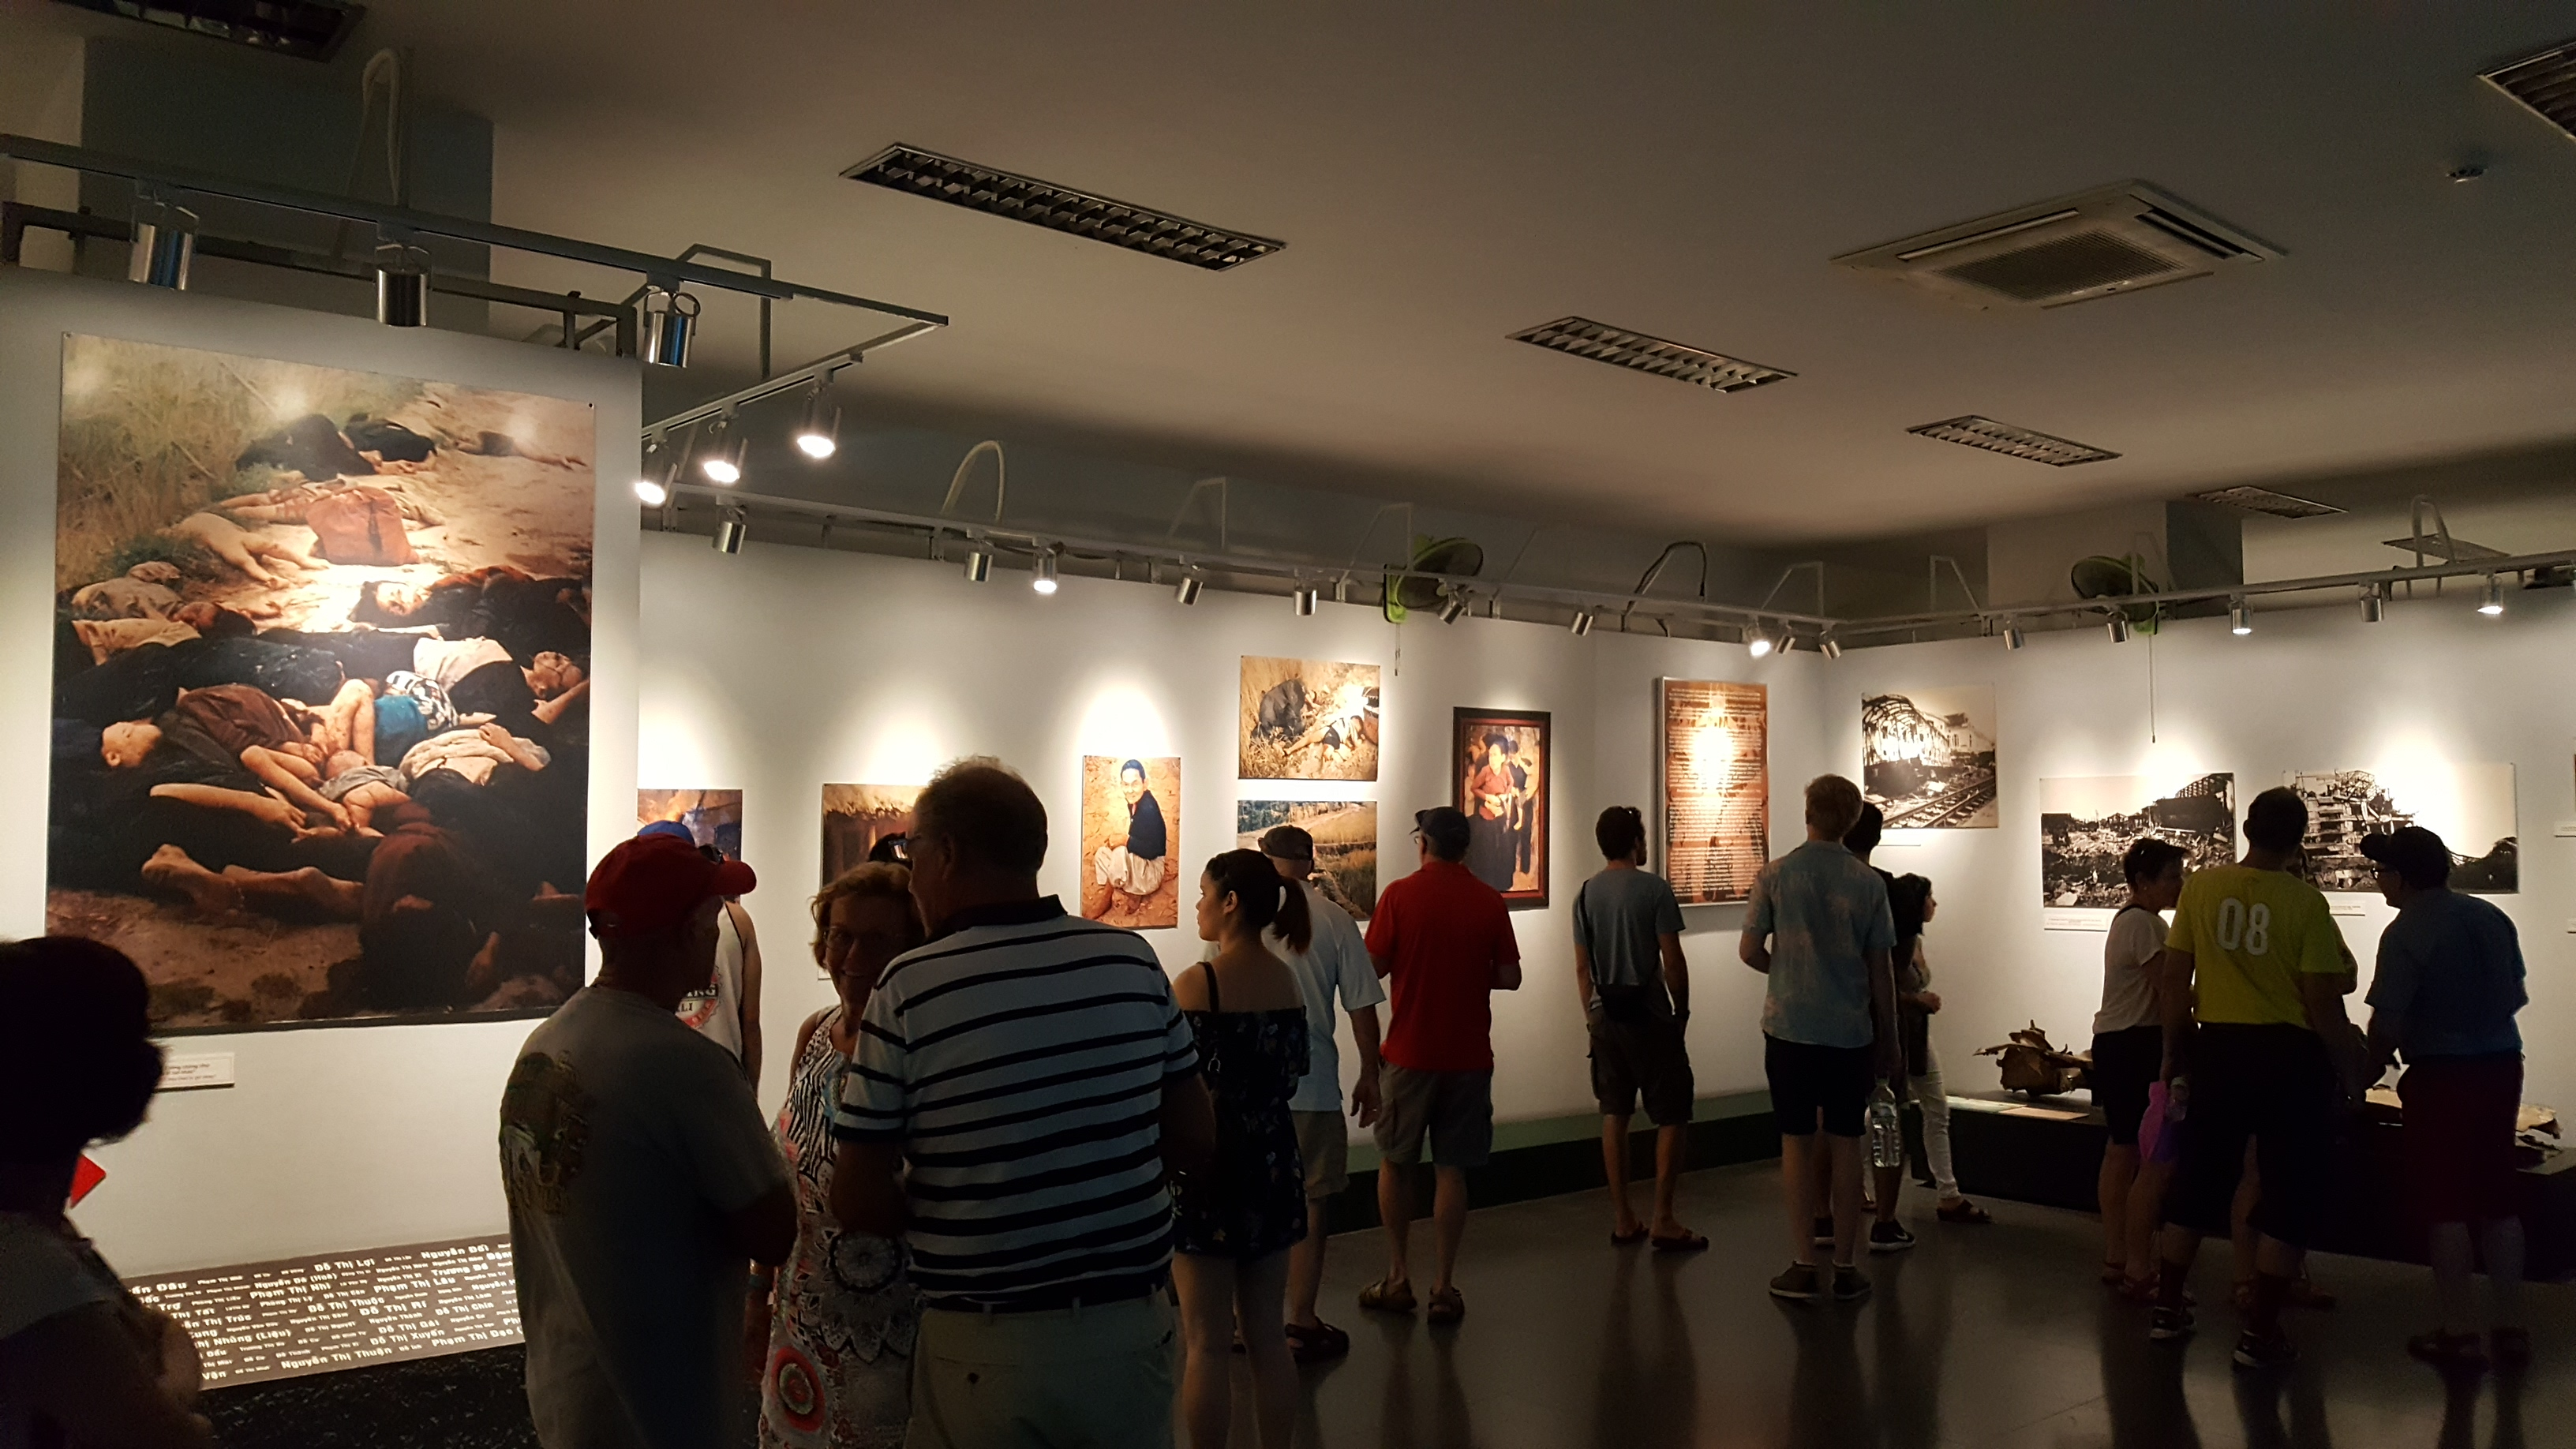 Photos displayed on the walls show war casualties and stories